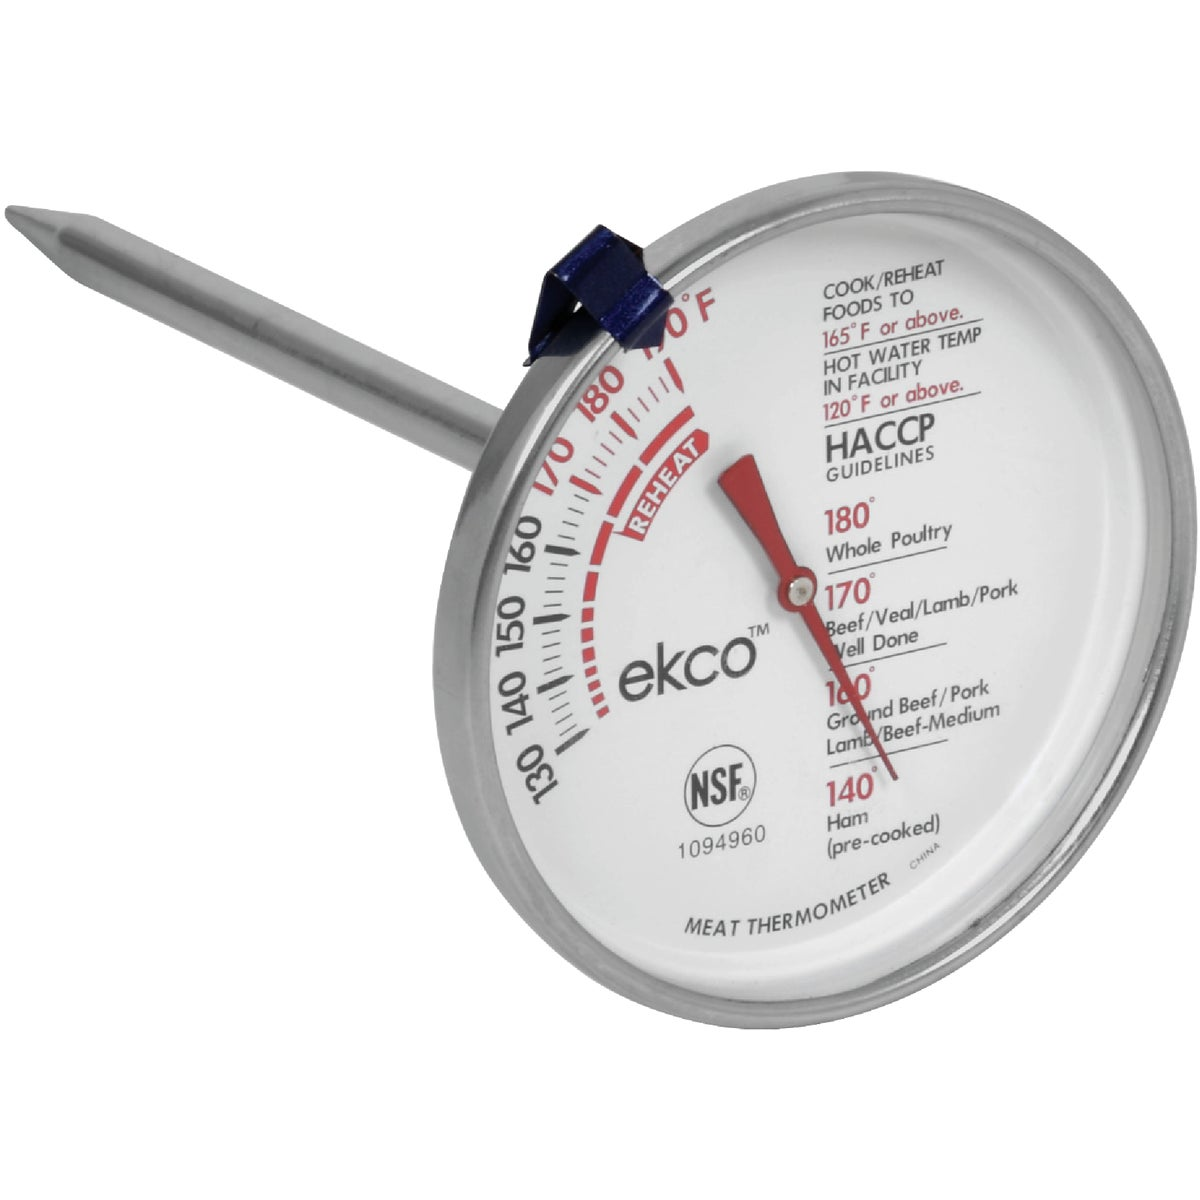 MEAT THERMOMETER - 1094960 by World Kitchen  Ekco